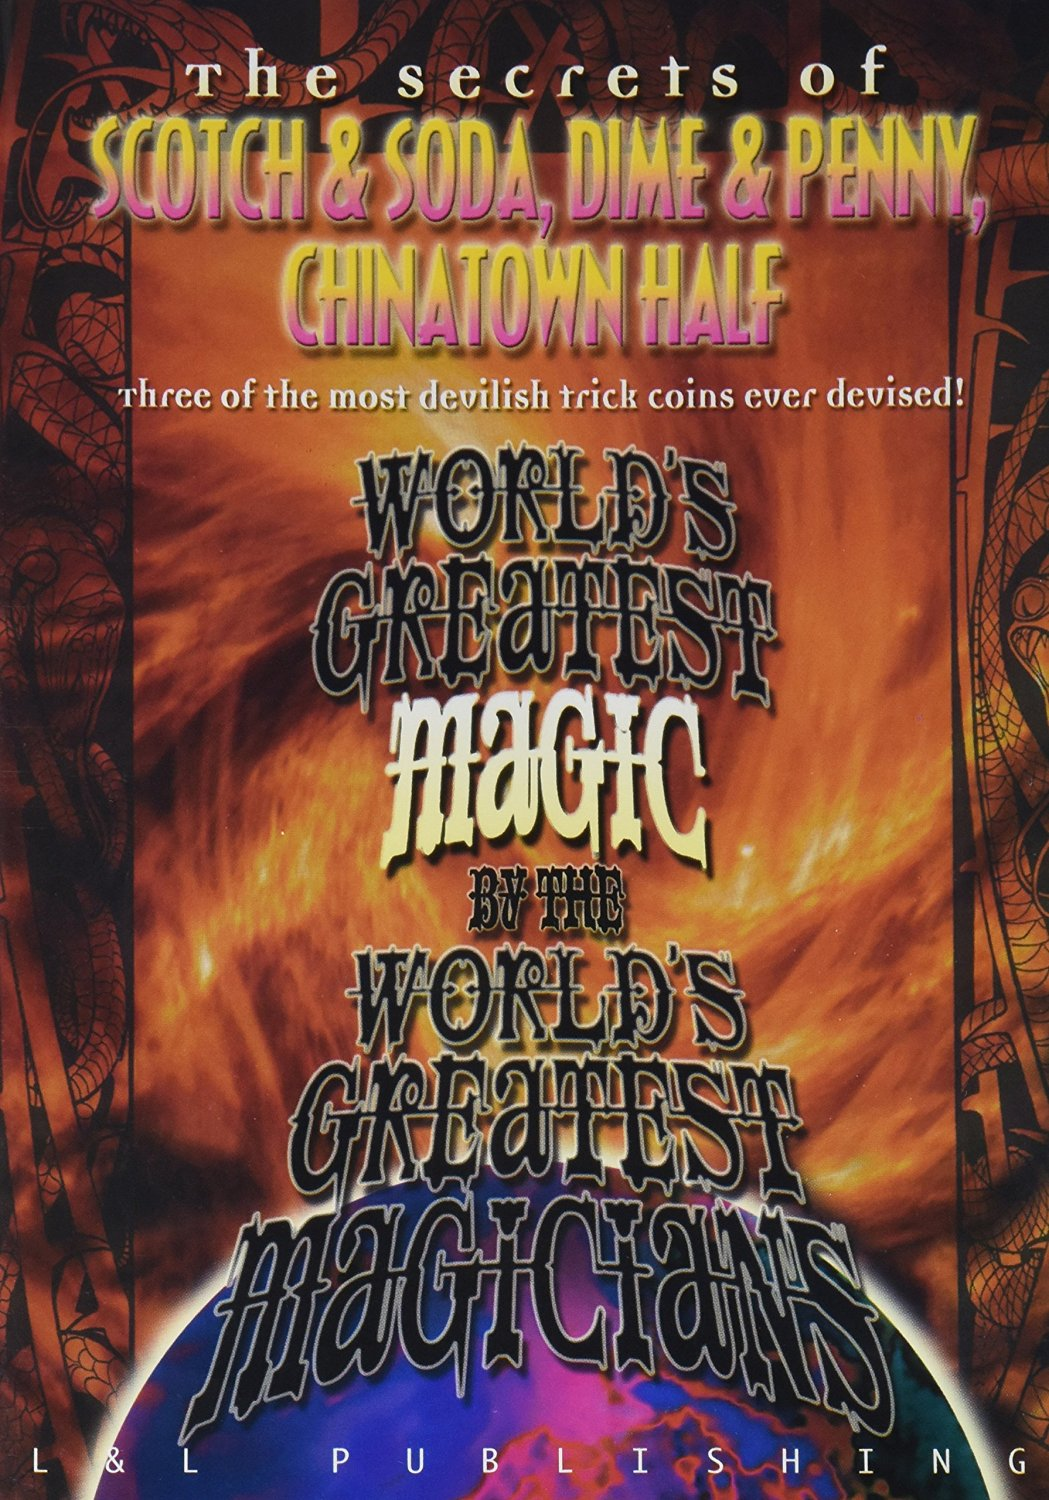 MMS Scotch and Soda, Dime and Penny, Chinatown Half (World Greatest Magic) - DVD